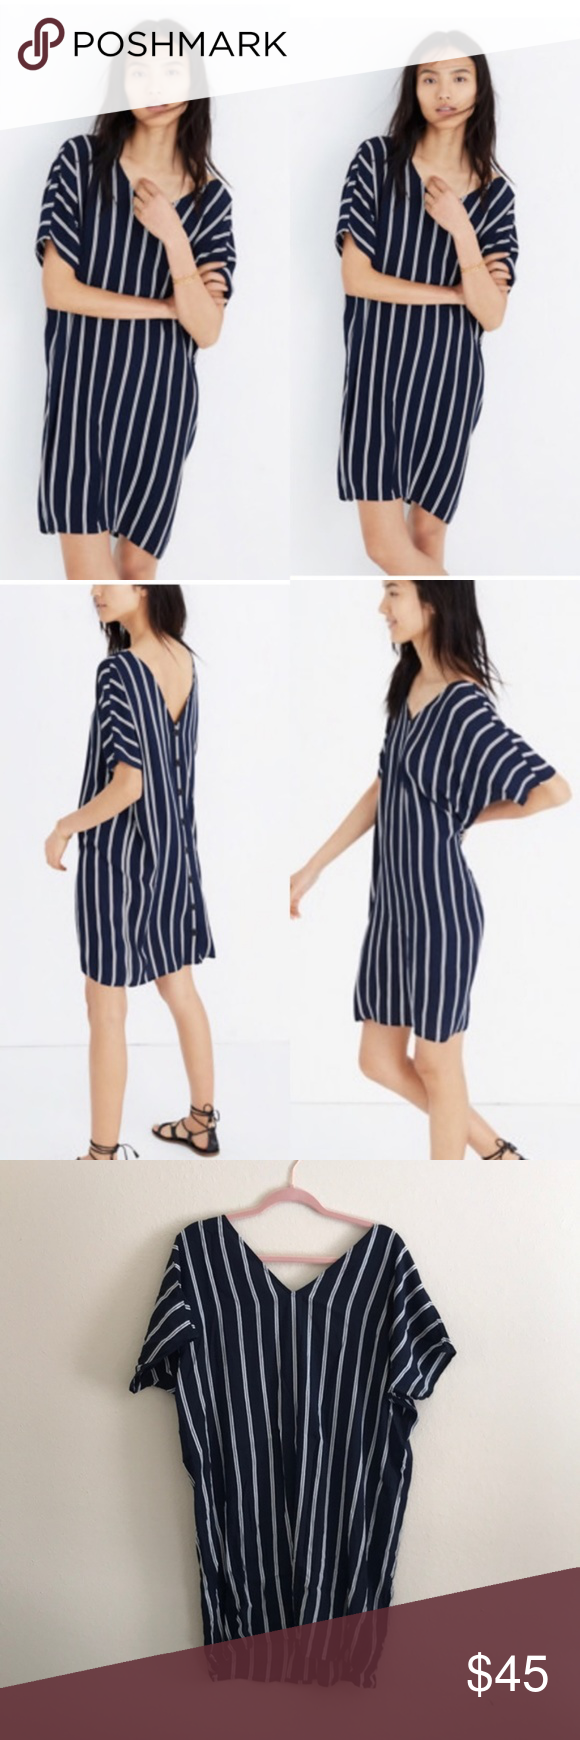 e9c04f79d Madewell Striped Plaza Dress M Lightly worn Madewell Striped Plaza dress –  great for springtime outings